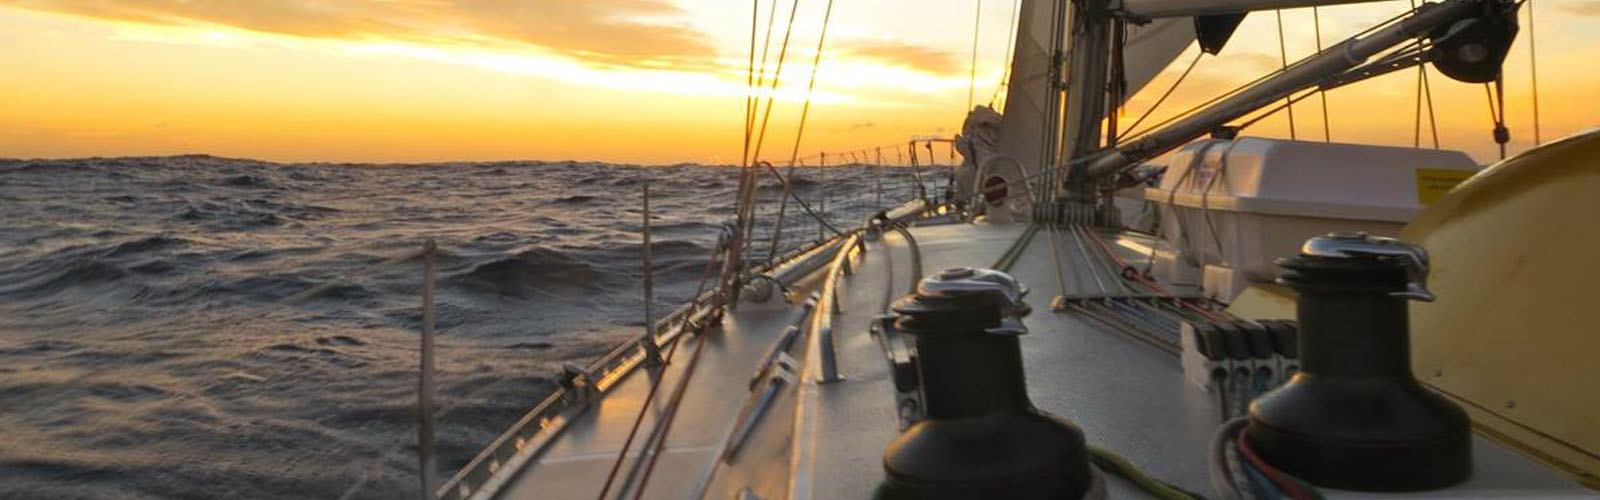 Yachtmaster-offshore-course